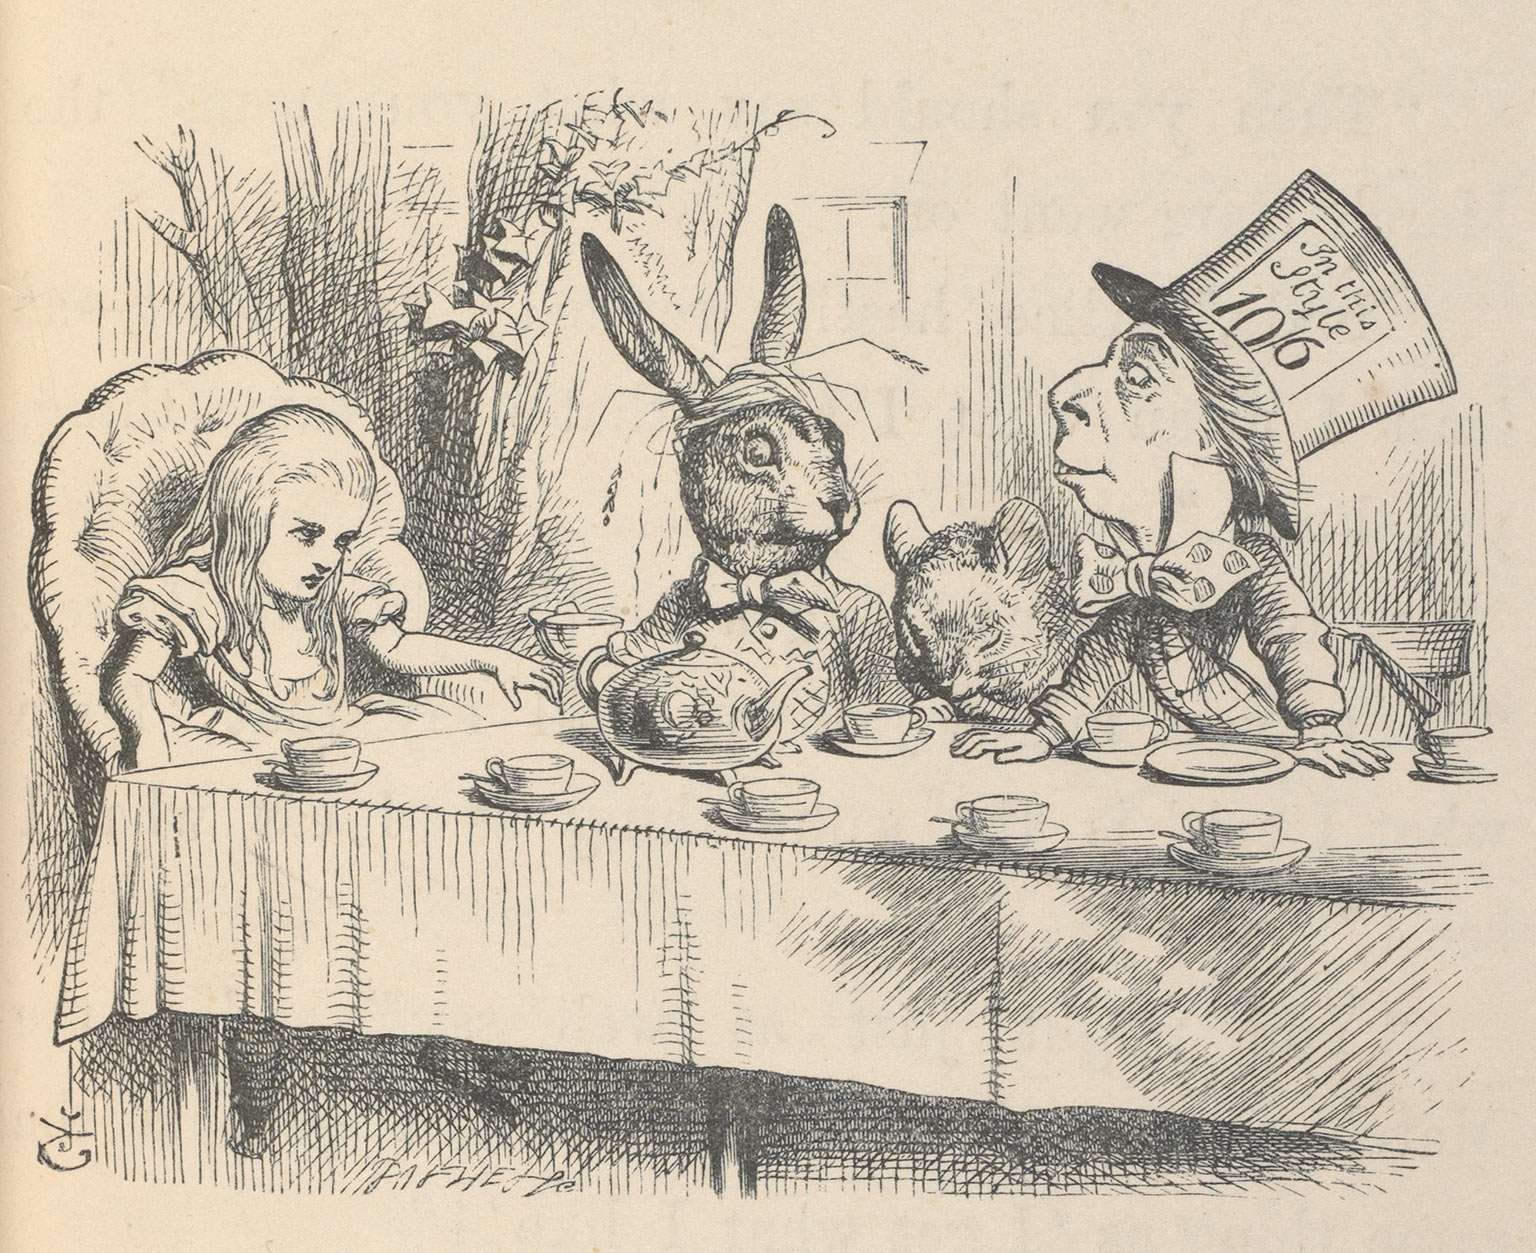 John Tennial, Alice at the Mad Hatter's Tea Party, illustration for Alice's Adventures in Wonderland, 1865